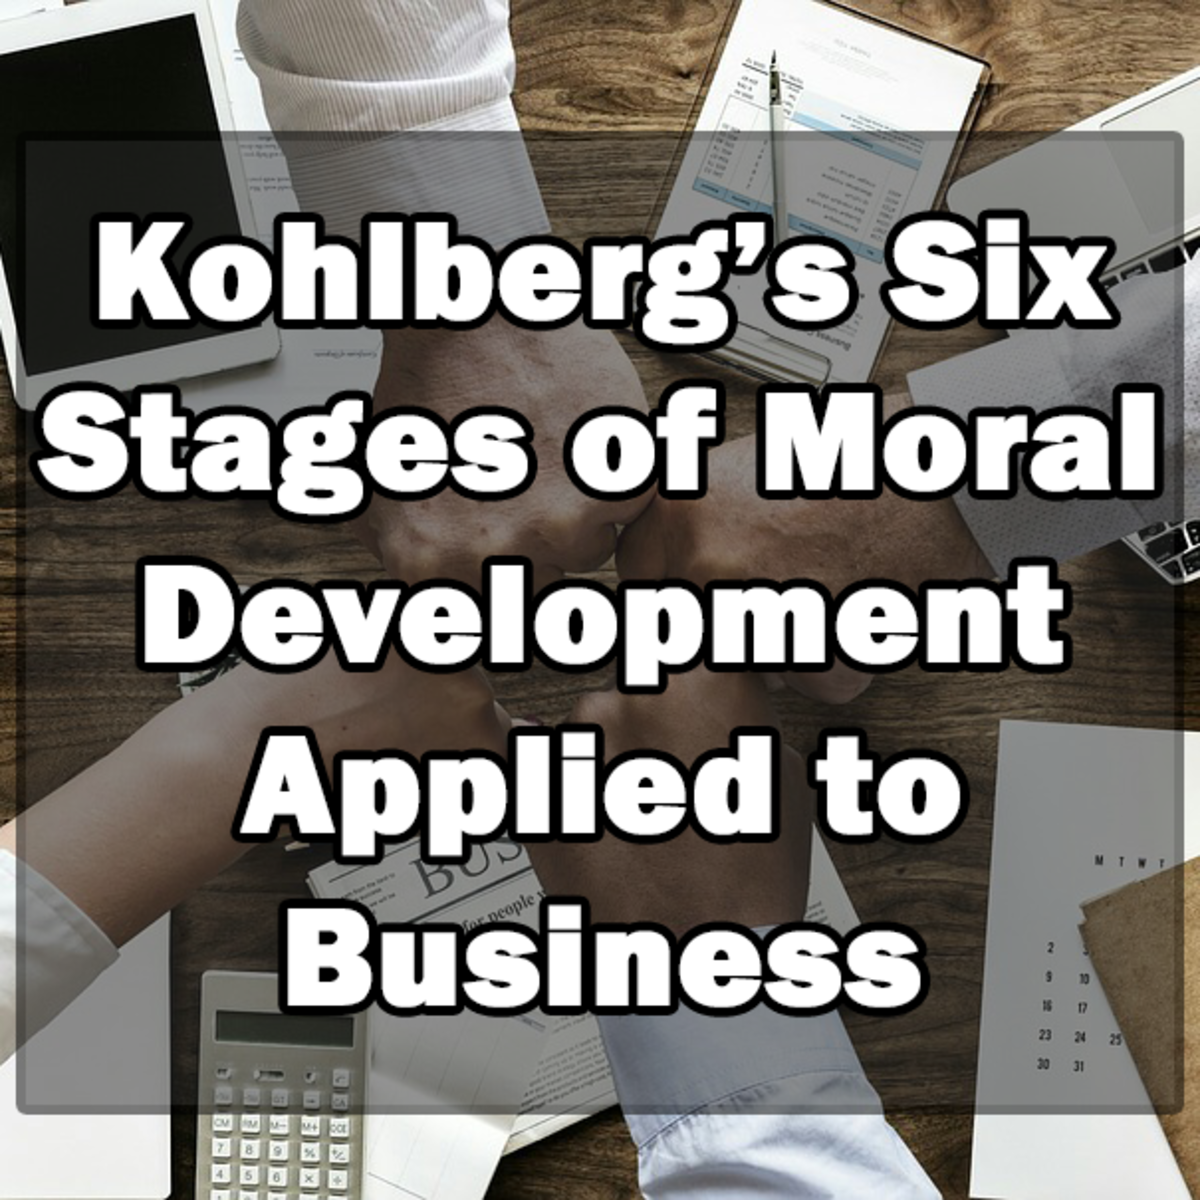 How Lawrence Kohlberg's Six Stages of Moral Development Can Be Applied to Business